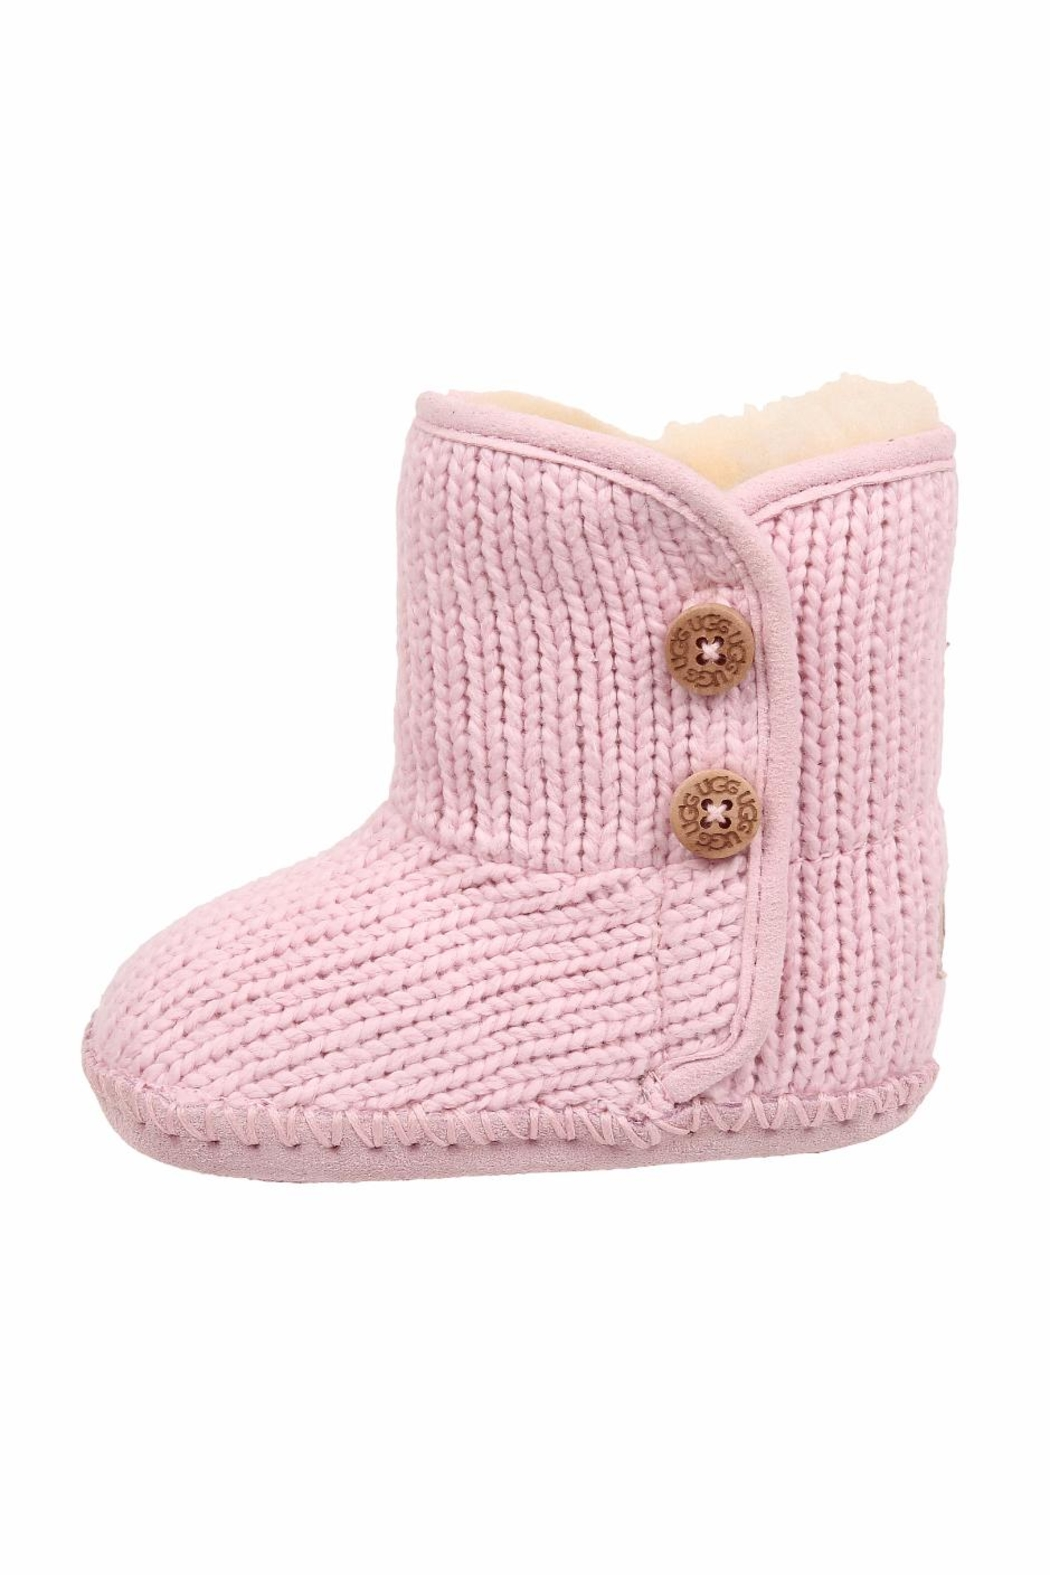 a46f0730d27 UGG Australia Purl Baby Booties from California by Mattalou Shoe ...